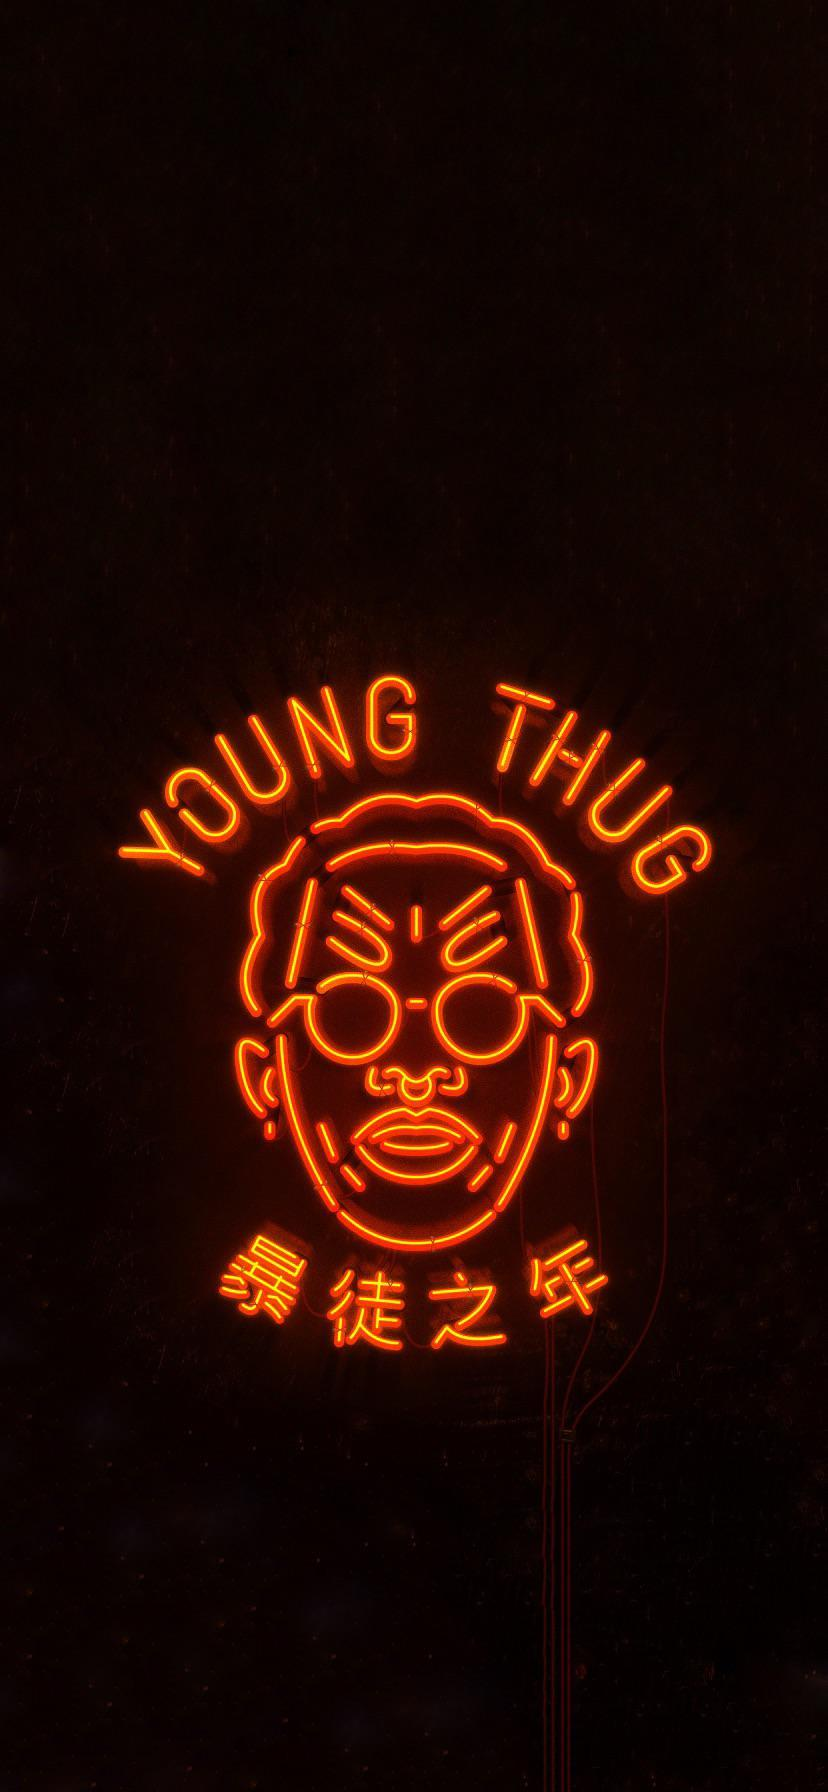 Young Thug So Much Fun Wallpapers Wallpaper Cave